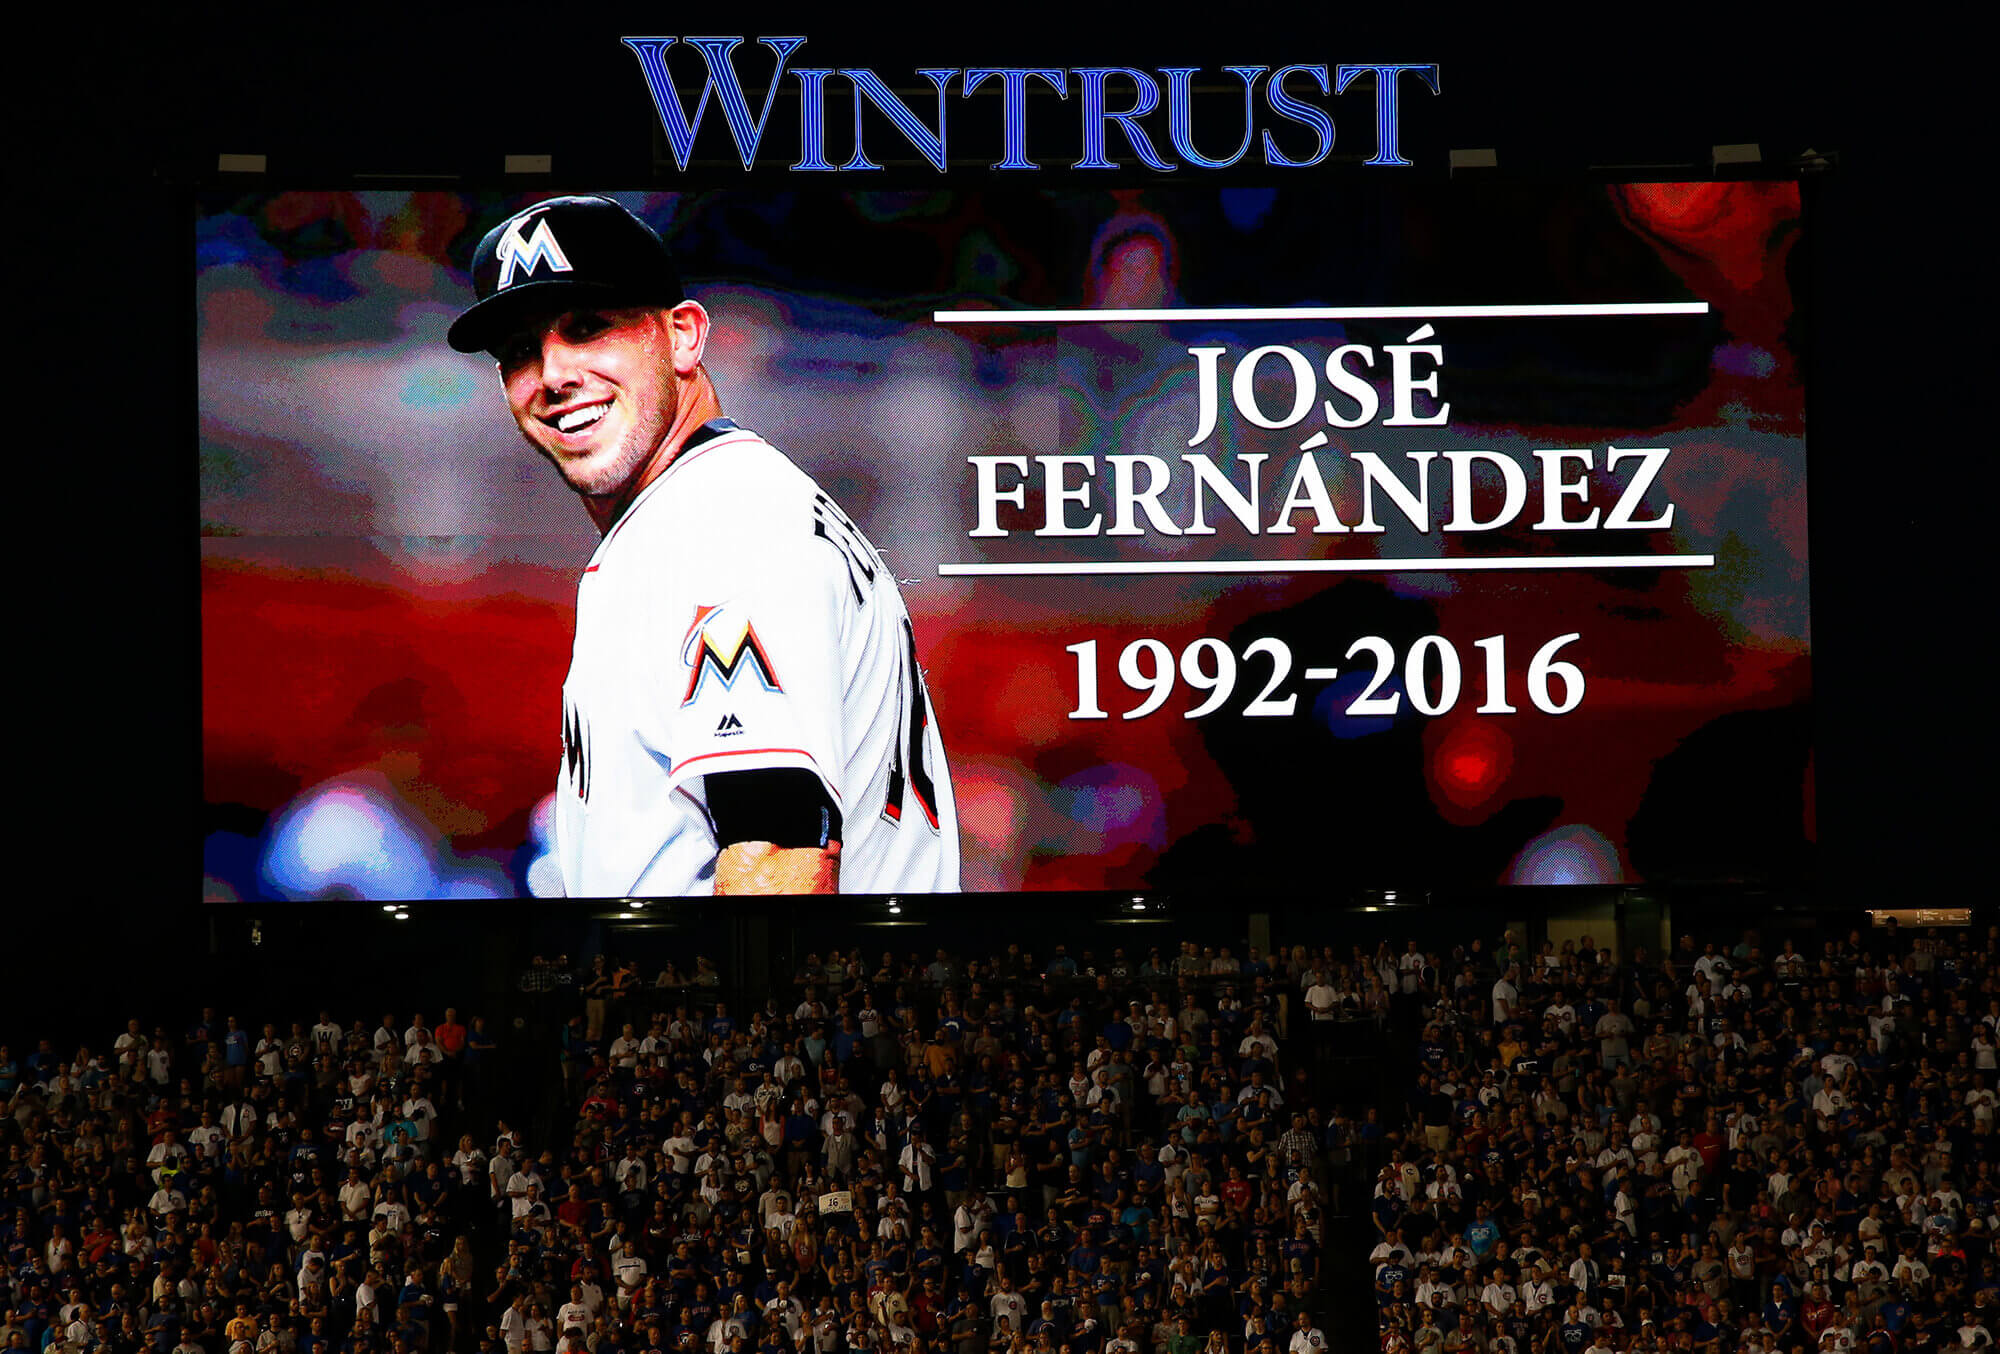 Image of Jose Fernandez being remembered at a baseball game